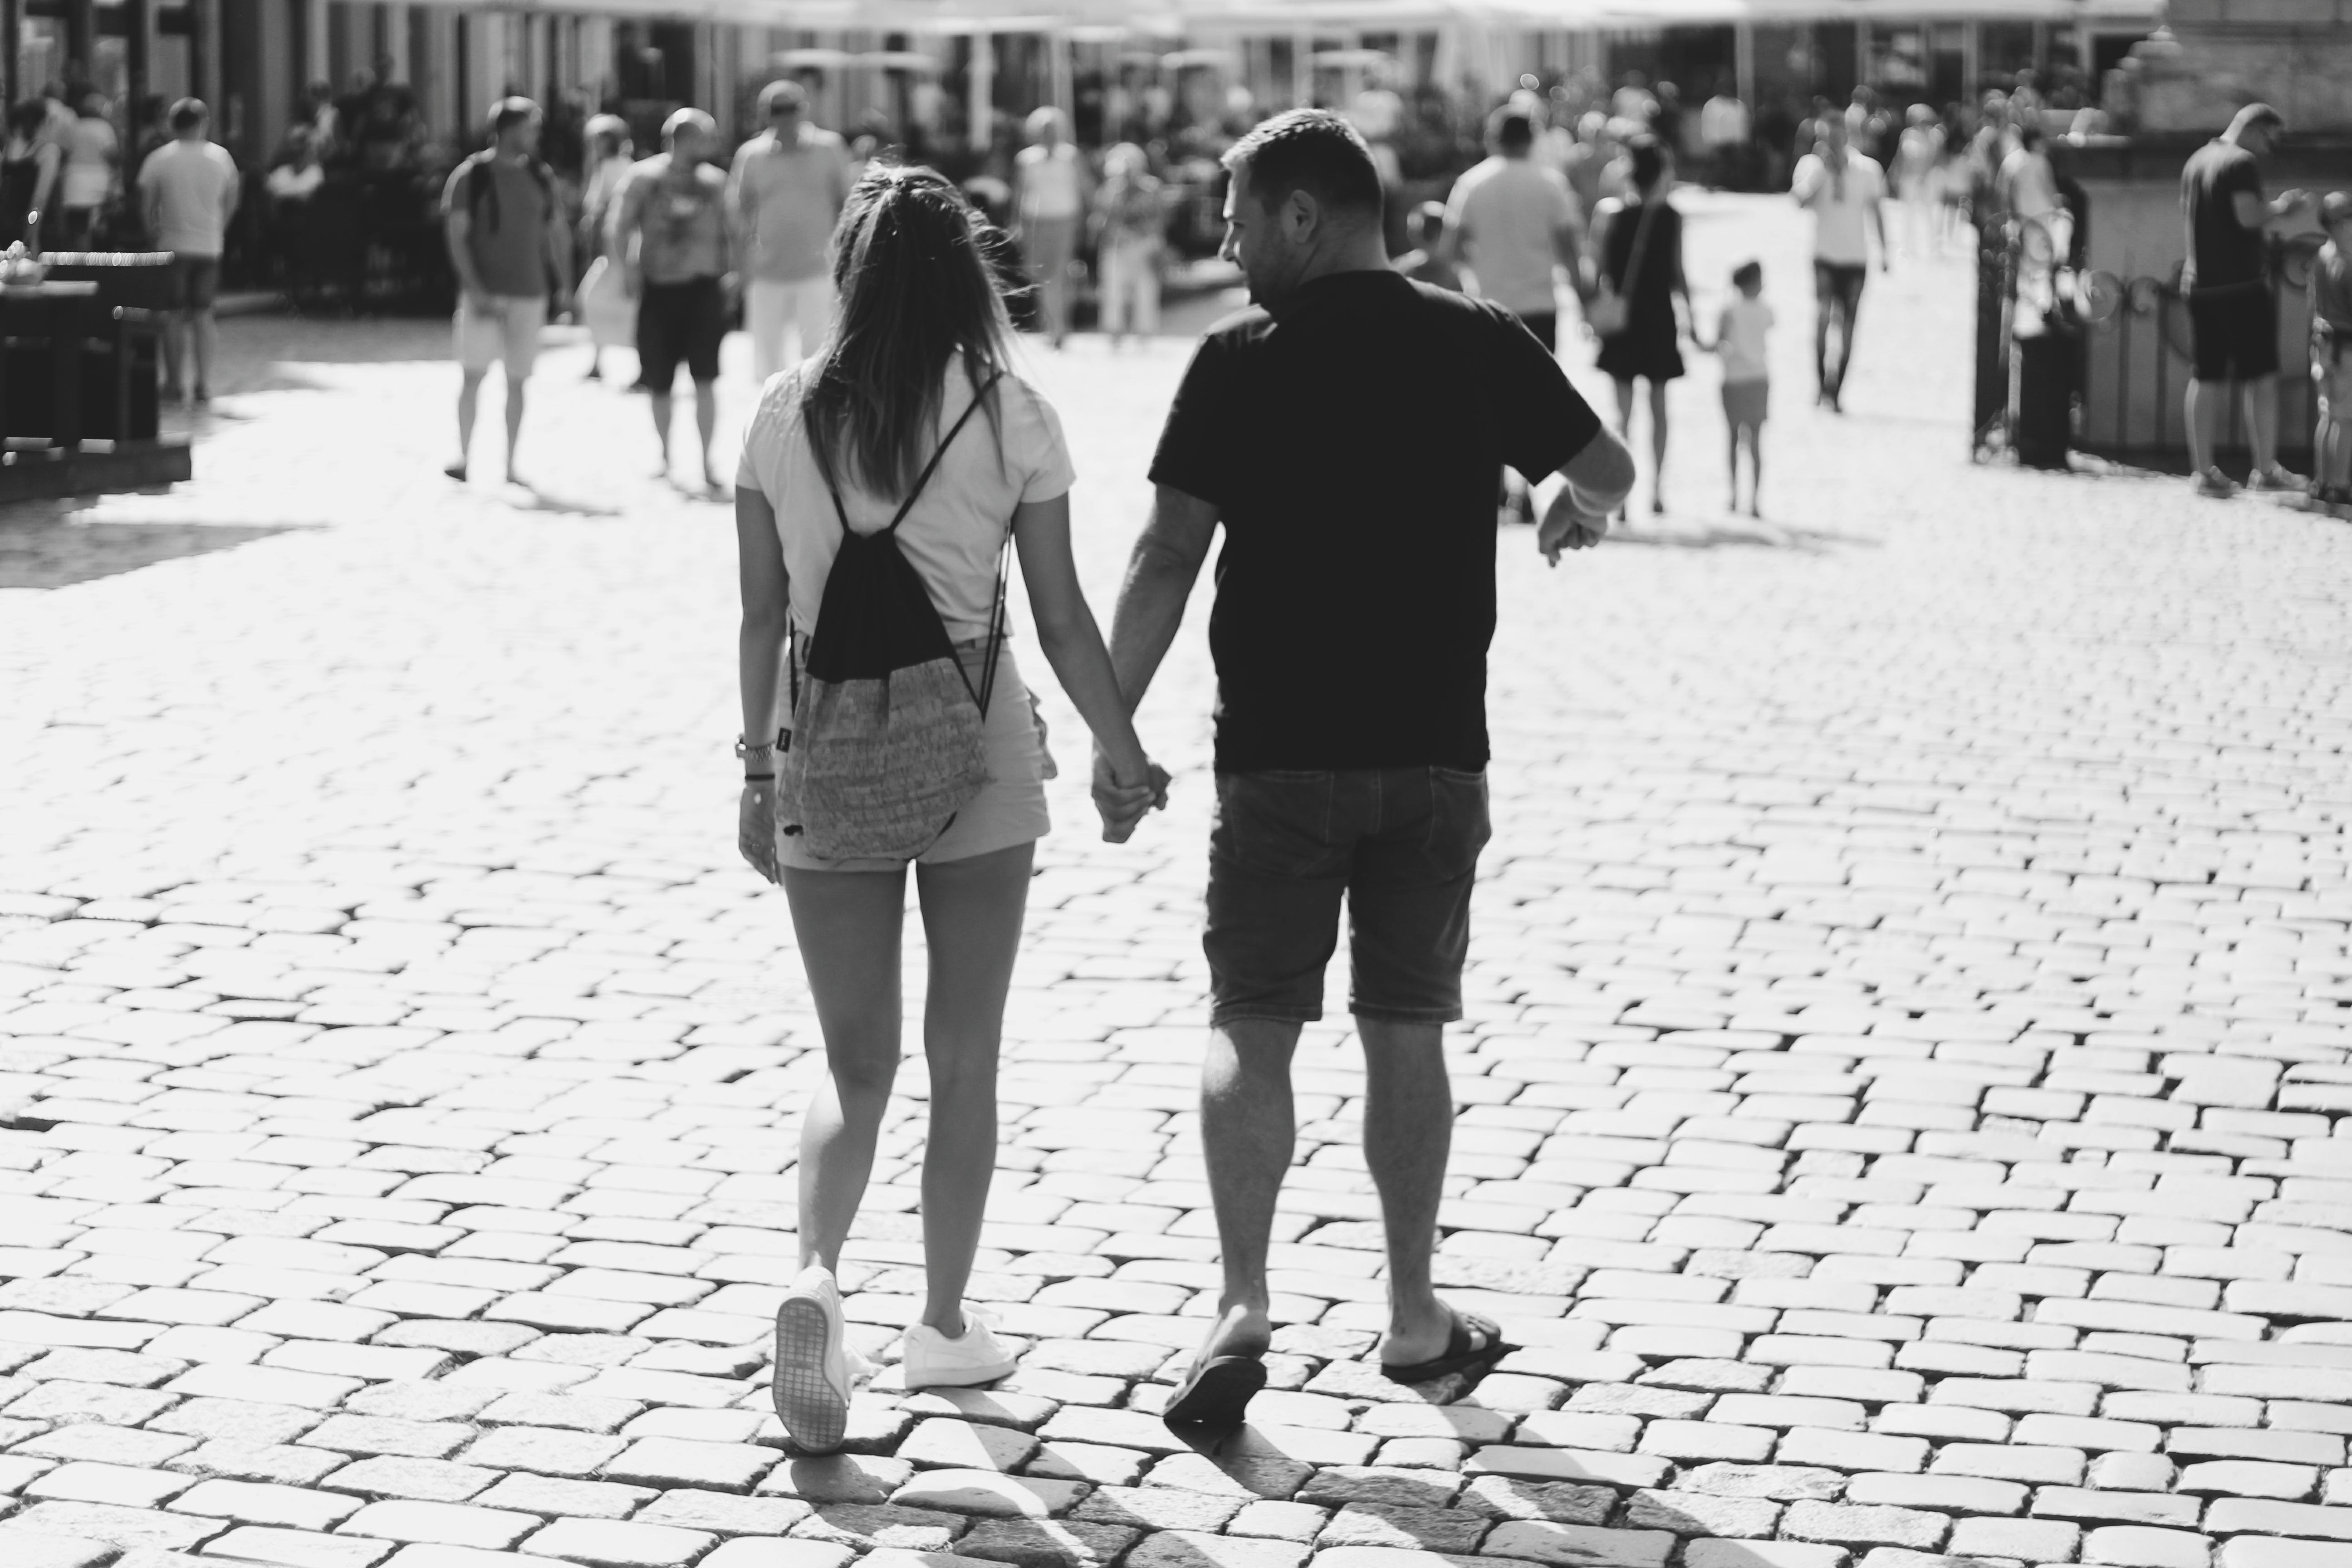 Grayscale Photography of Woman and Man Holding Hands While Walker